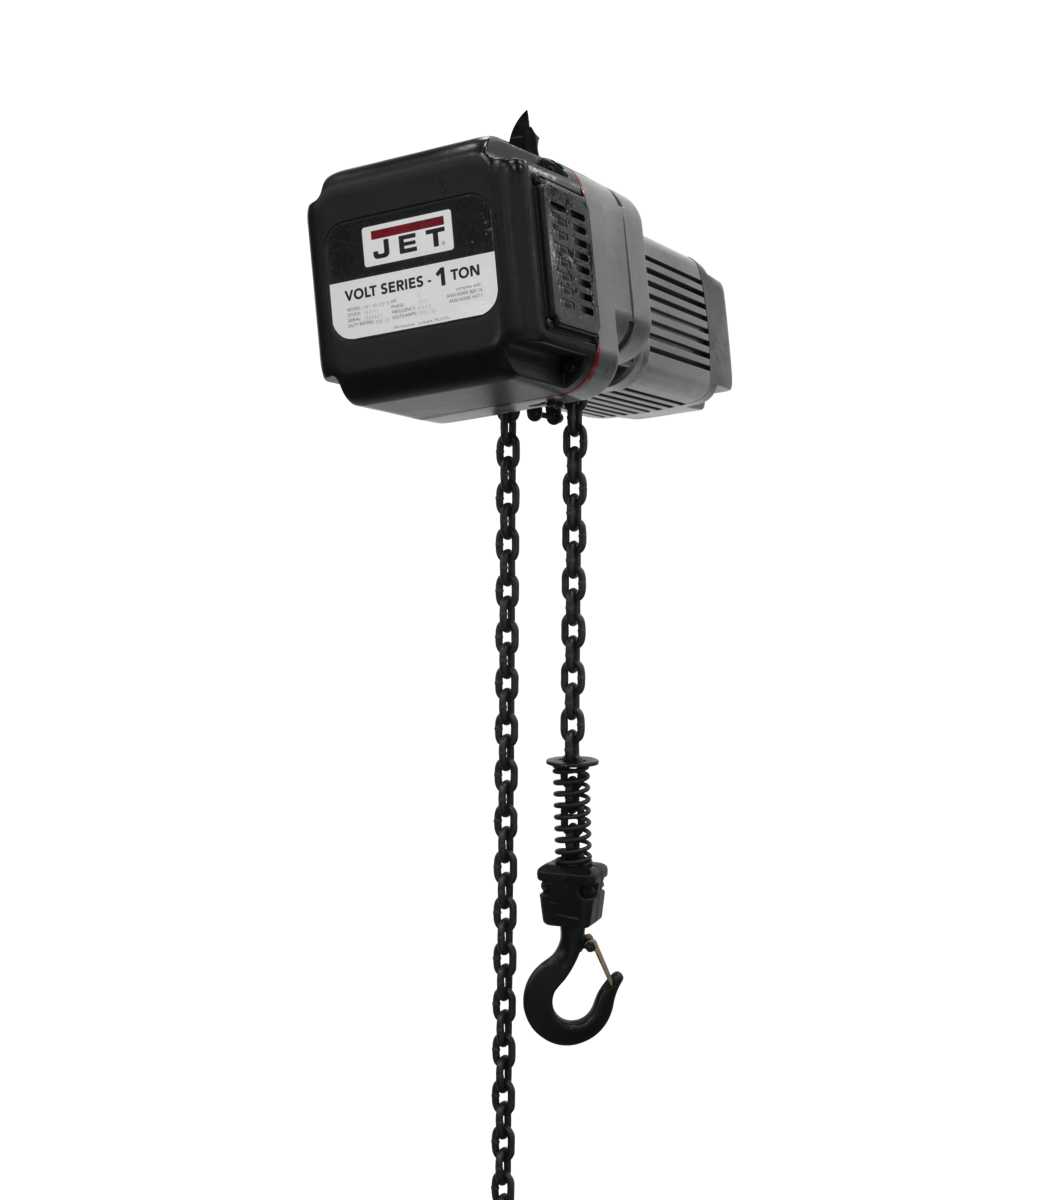 VOLT 1T VARIABLE-SPEED ELECTRIC HOIST 1PH/3PH 230V 20' LIFT